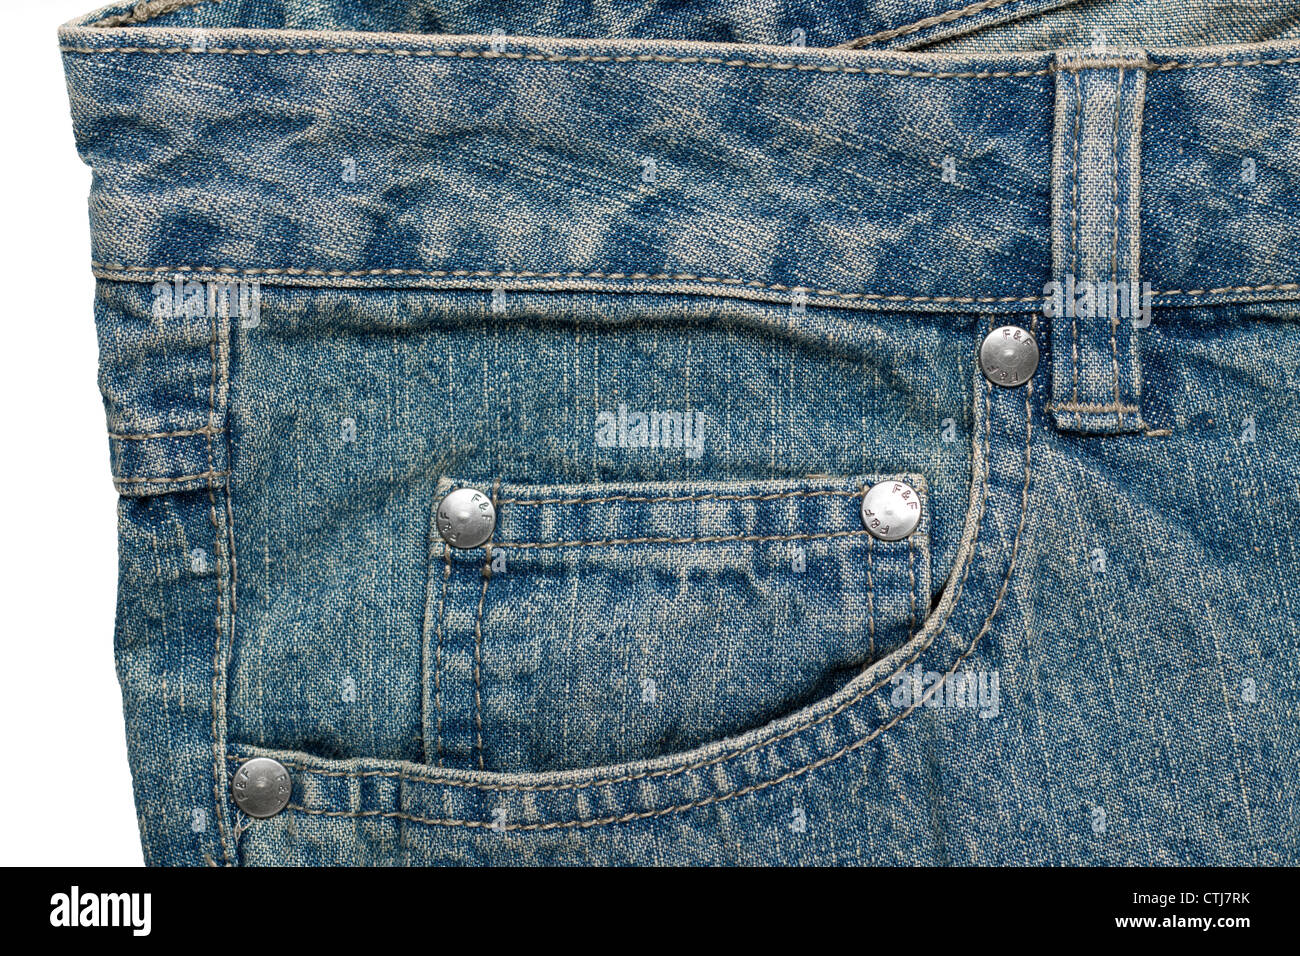 Coin pocket on a pair of denim jeans - Stock Image